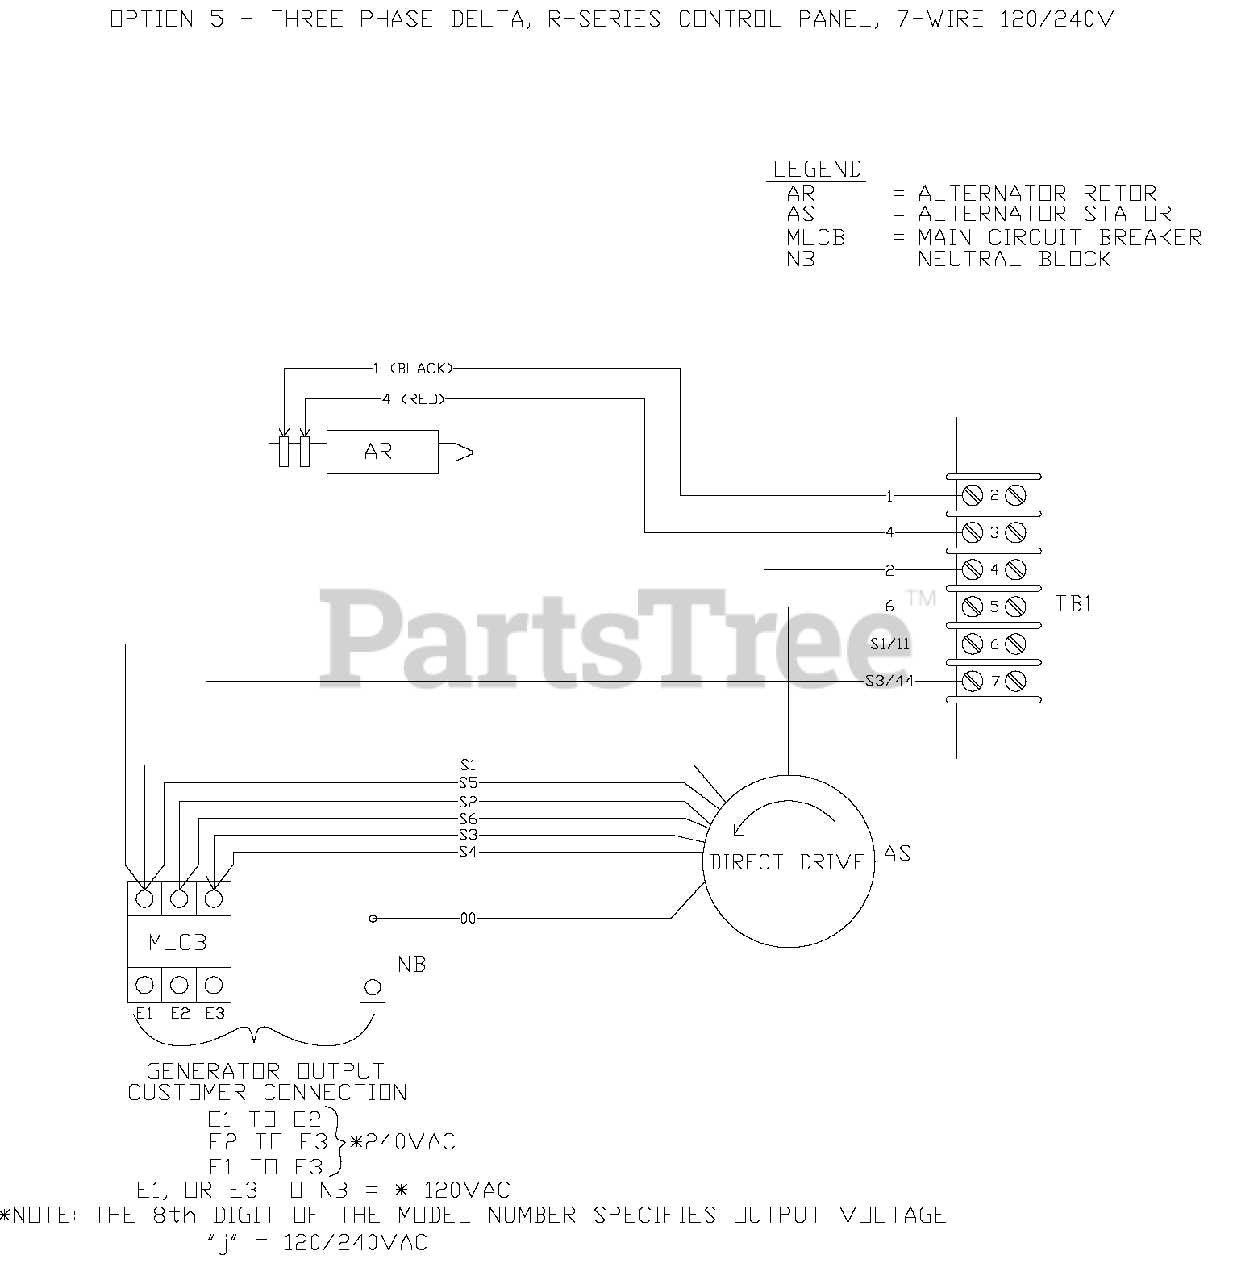 Generac QT03016KNSN - Generac 30kW Home Standby Generator (SN: 4911532 -  5036348) (2008) Wiring Diagram (0F6839) Parts Lookup with Diagrams |  PartsTree | Generac 30 Kw Wiring Diagram |  | PartsTree